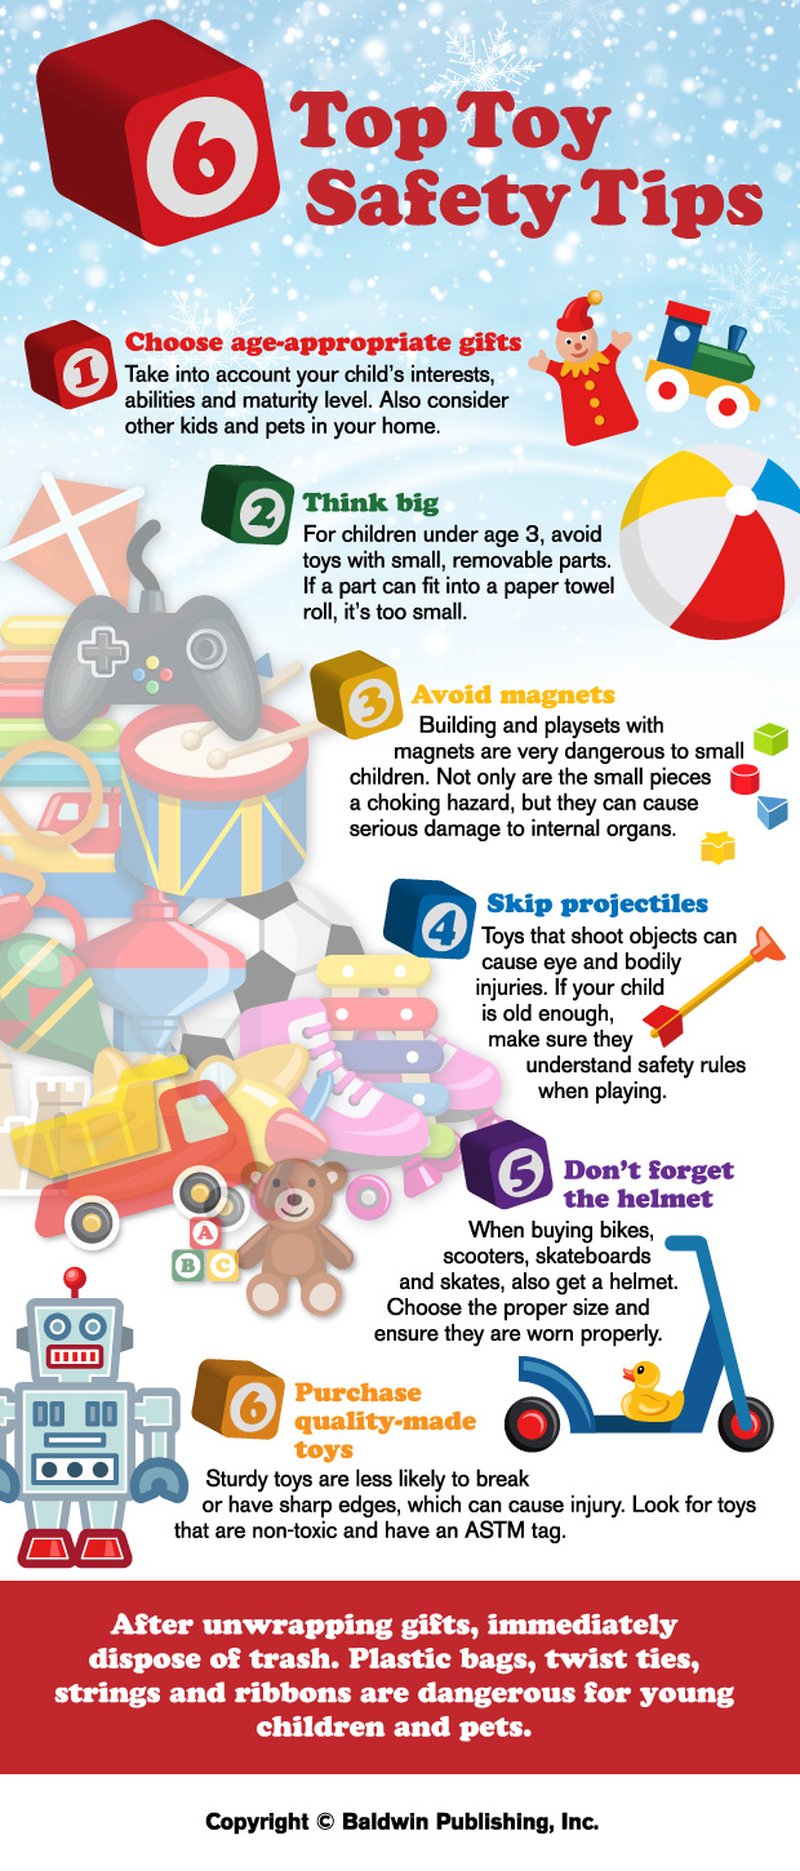 Six Top Toy Safety Tips #infographic #Toy Safety #Tips #Safety